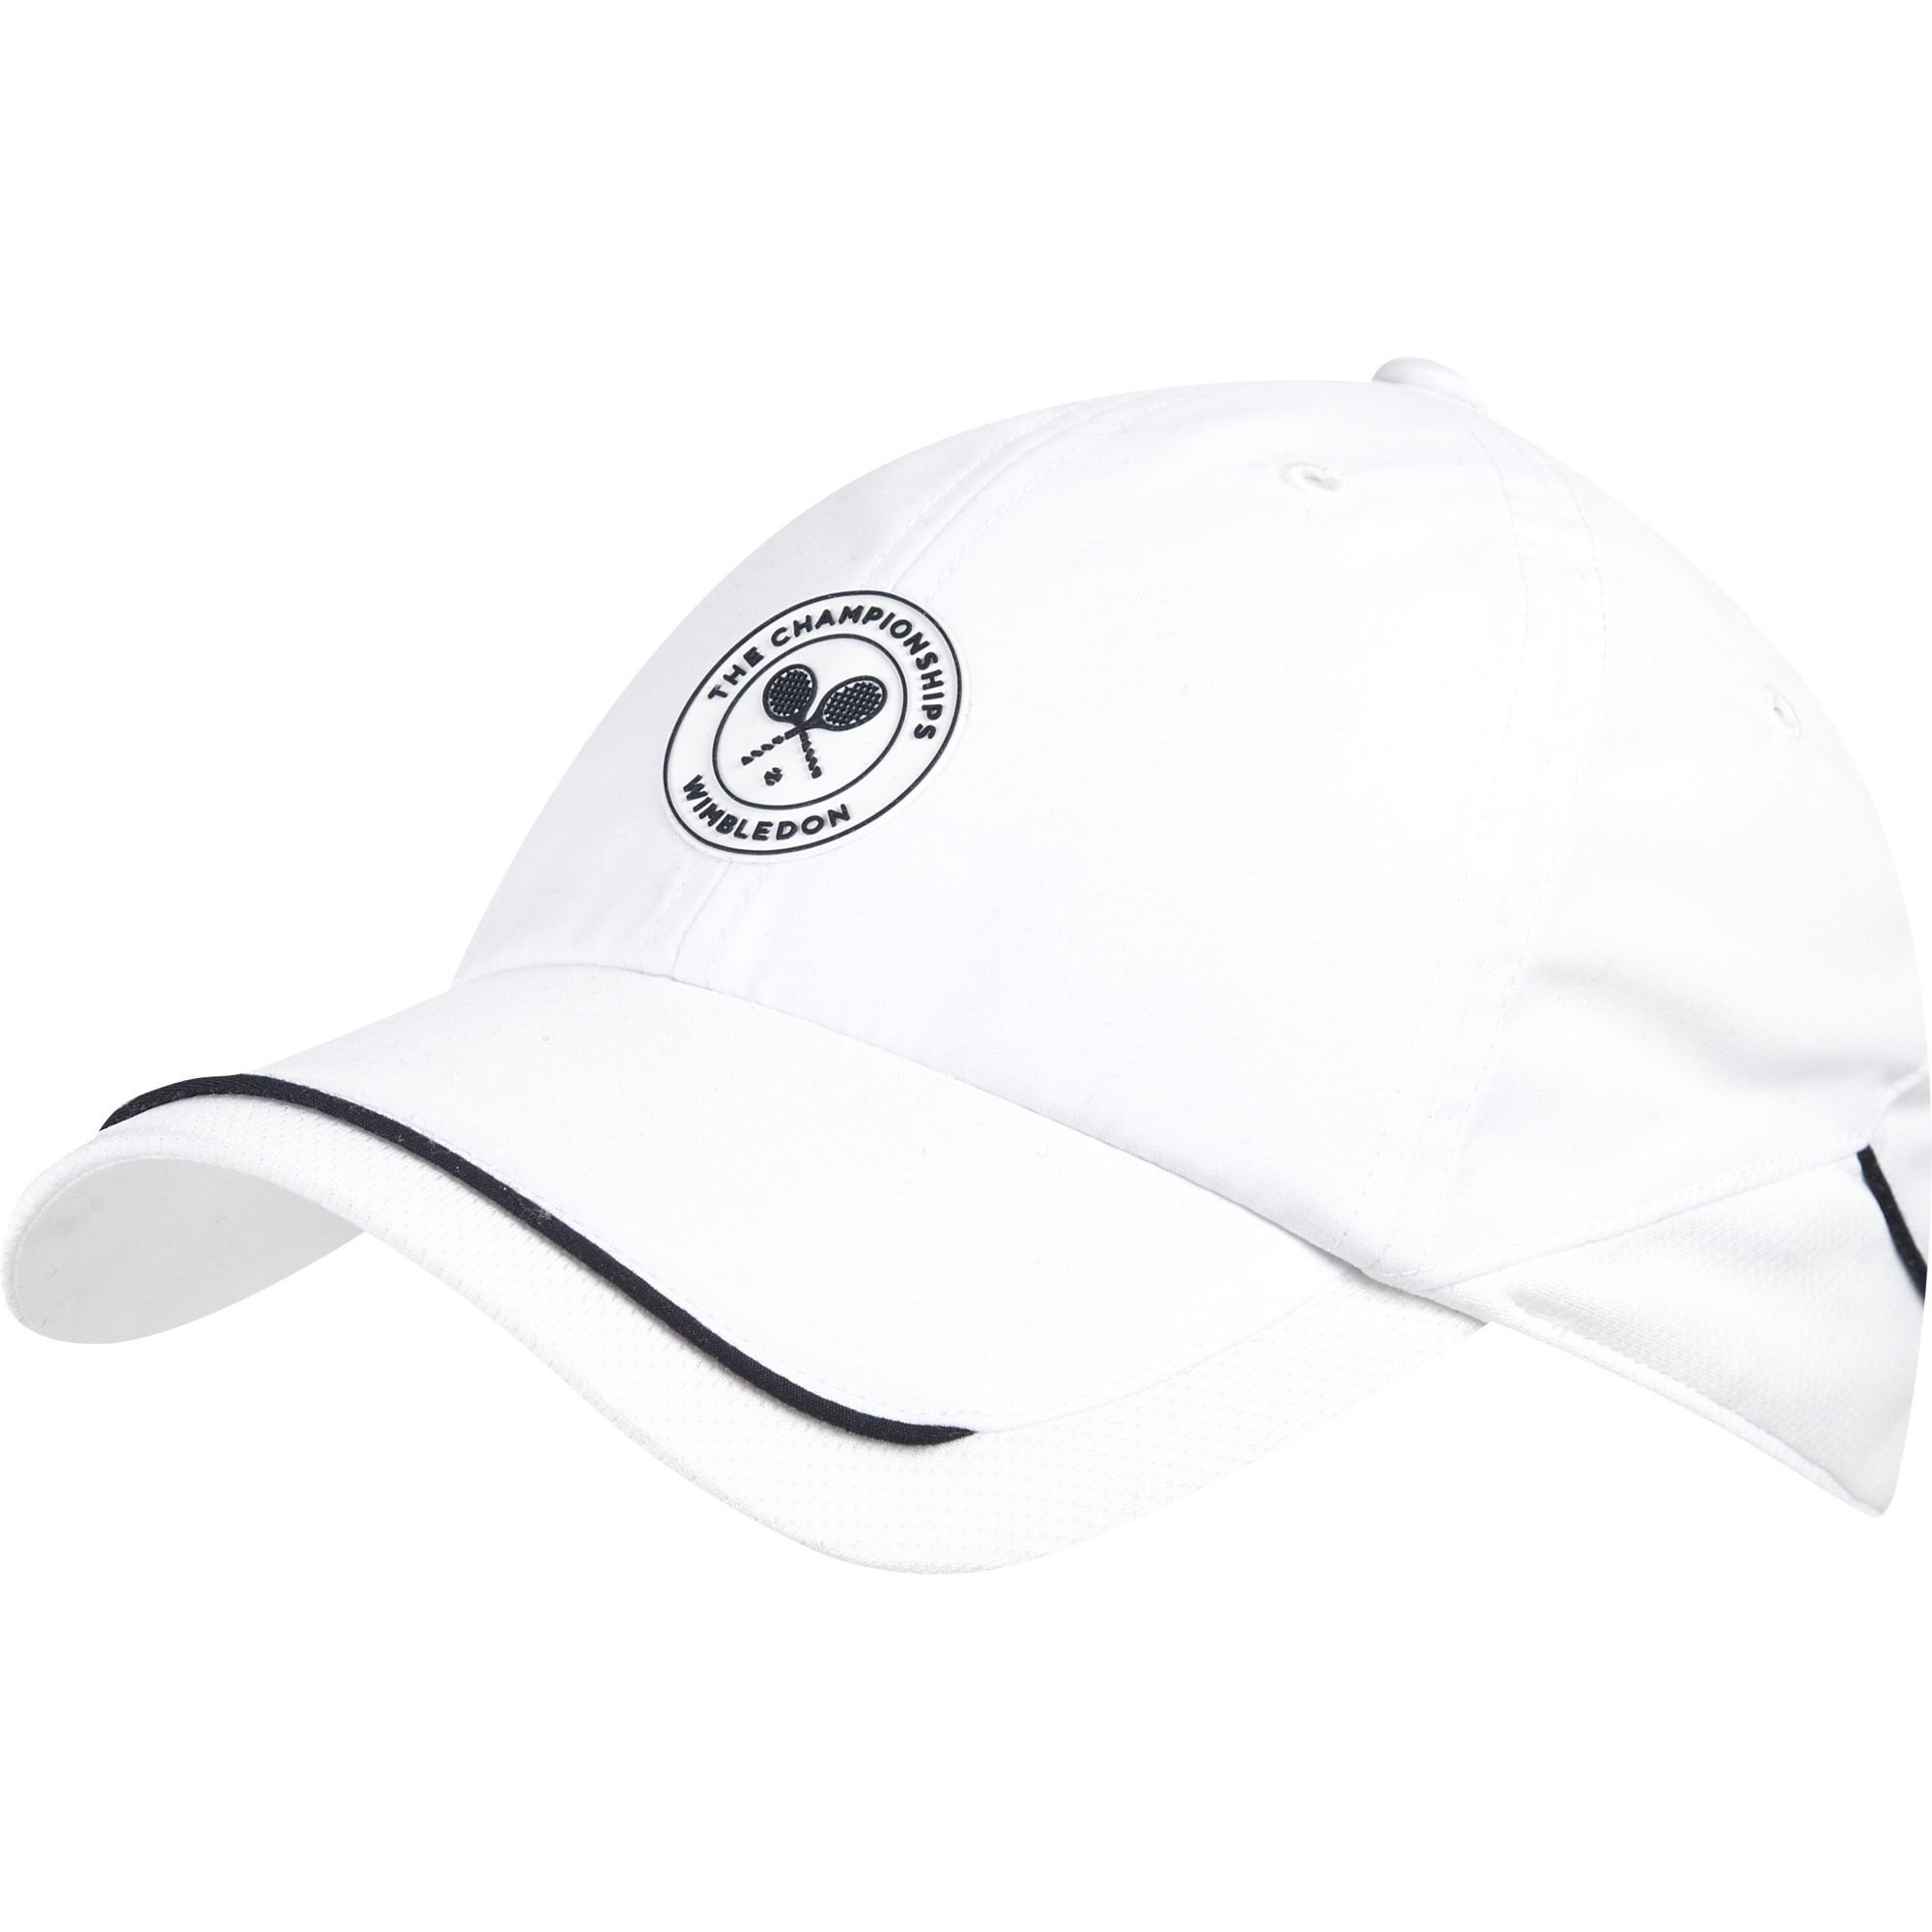 Wimbledon Sports Cap - White